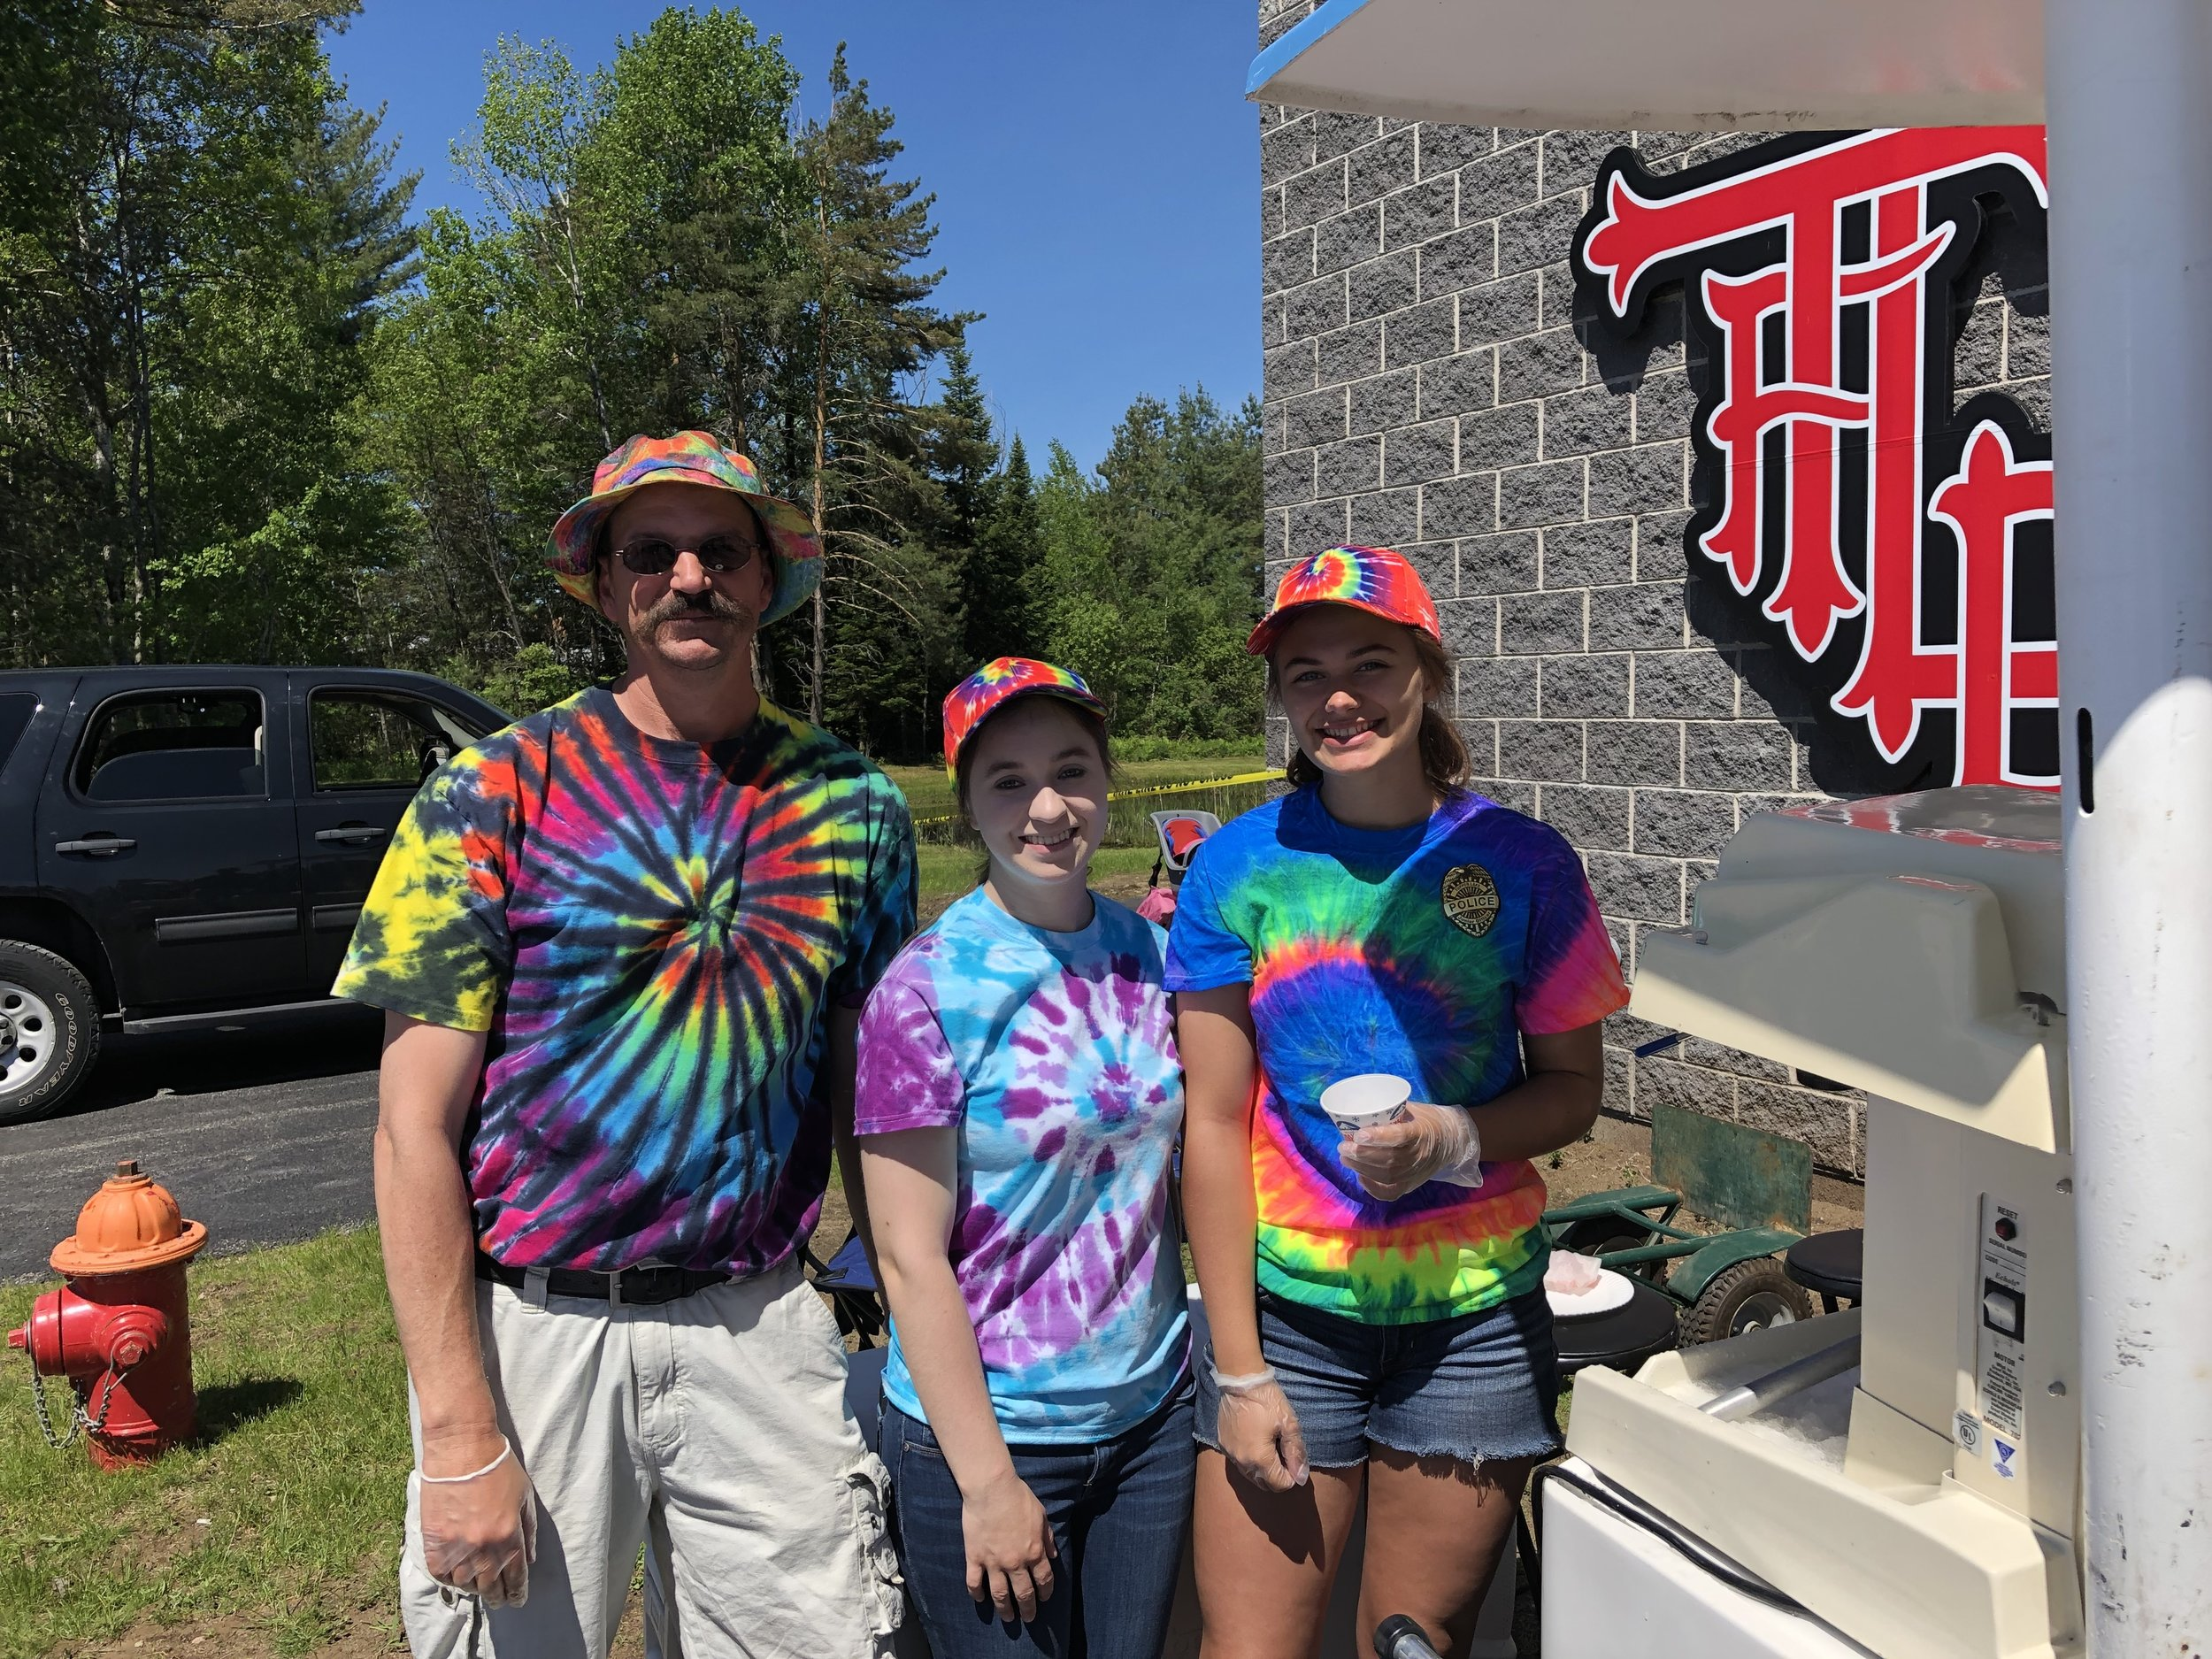 Carl Larson and his snow cone team Lindsay Remington and Rylie Fletcher kept their cool product flowing for thirsty bike riders. Over 375 cones they served.